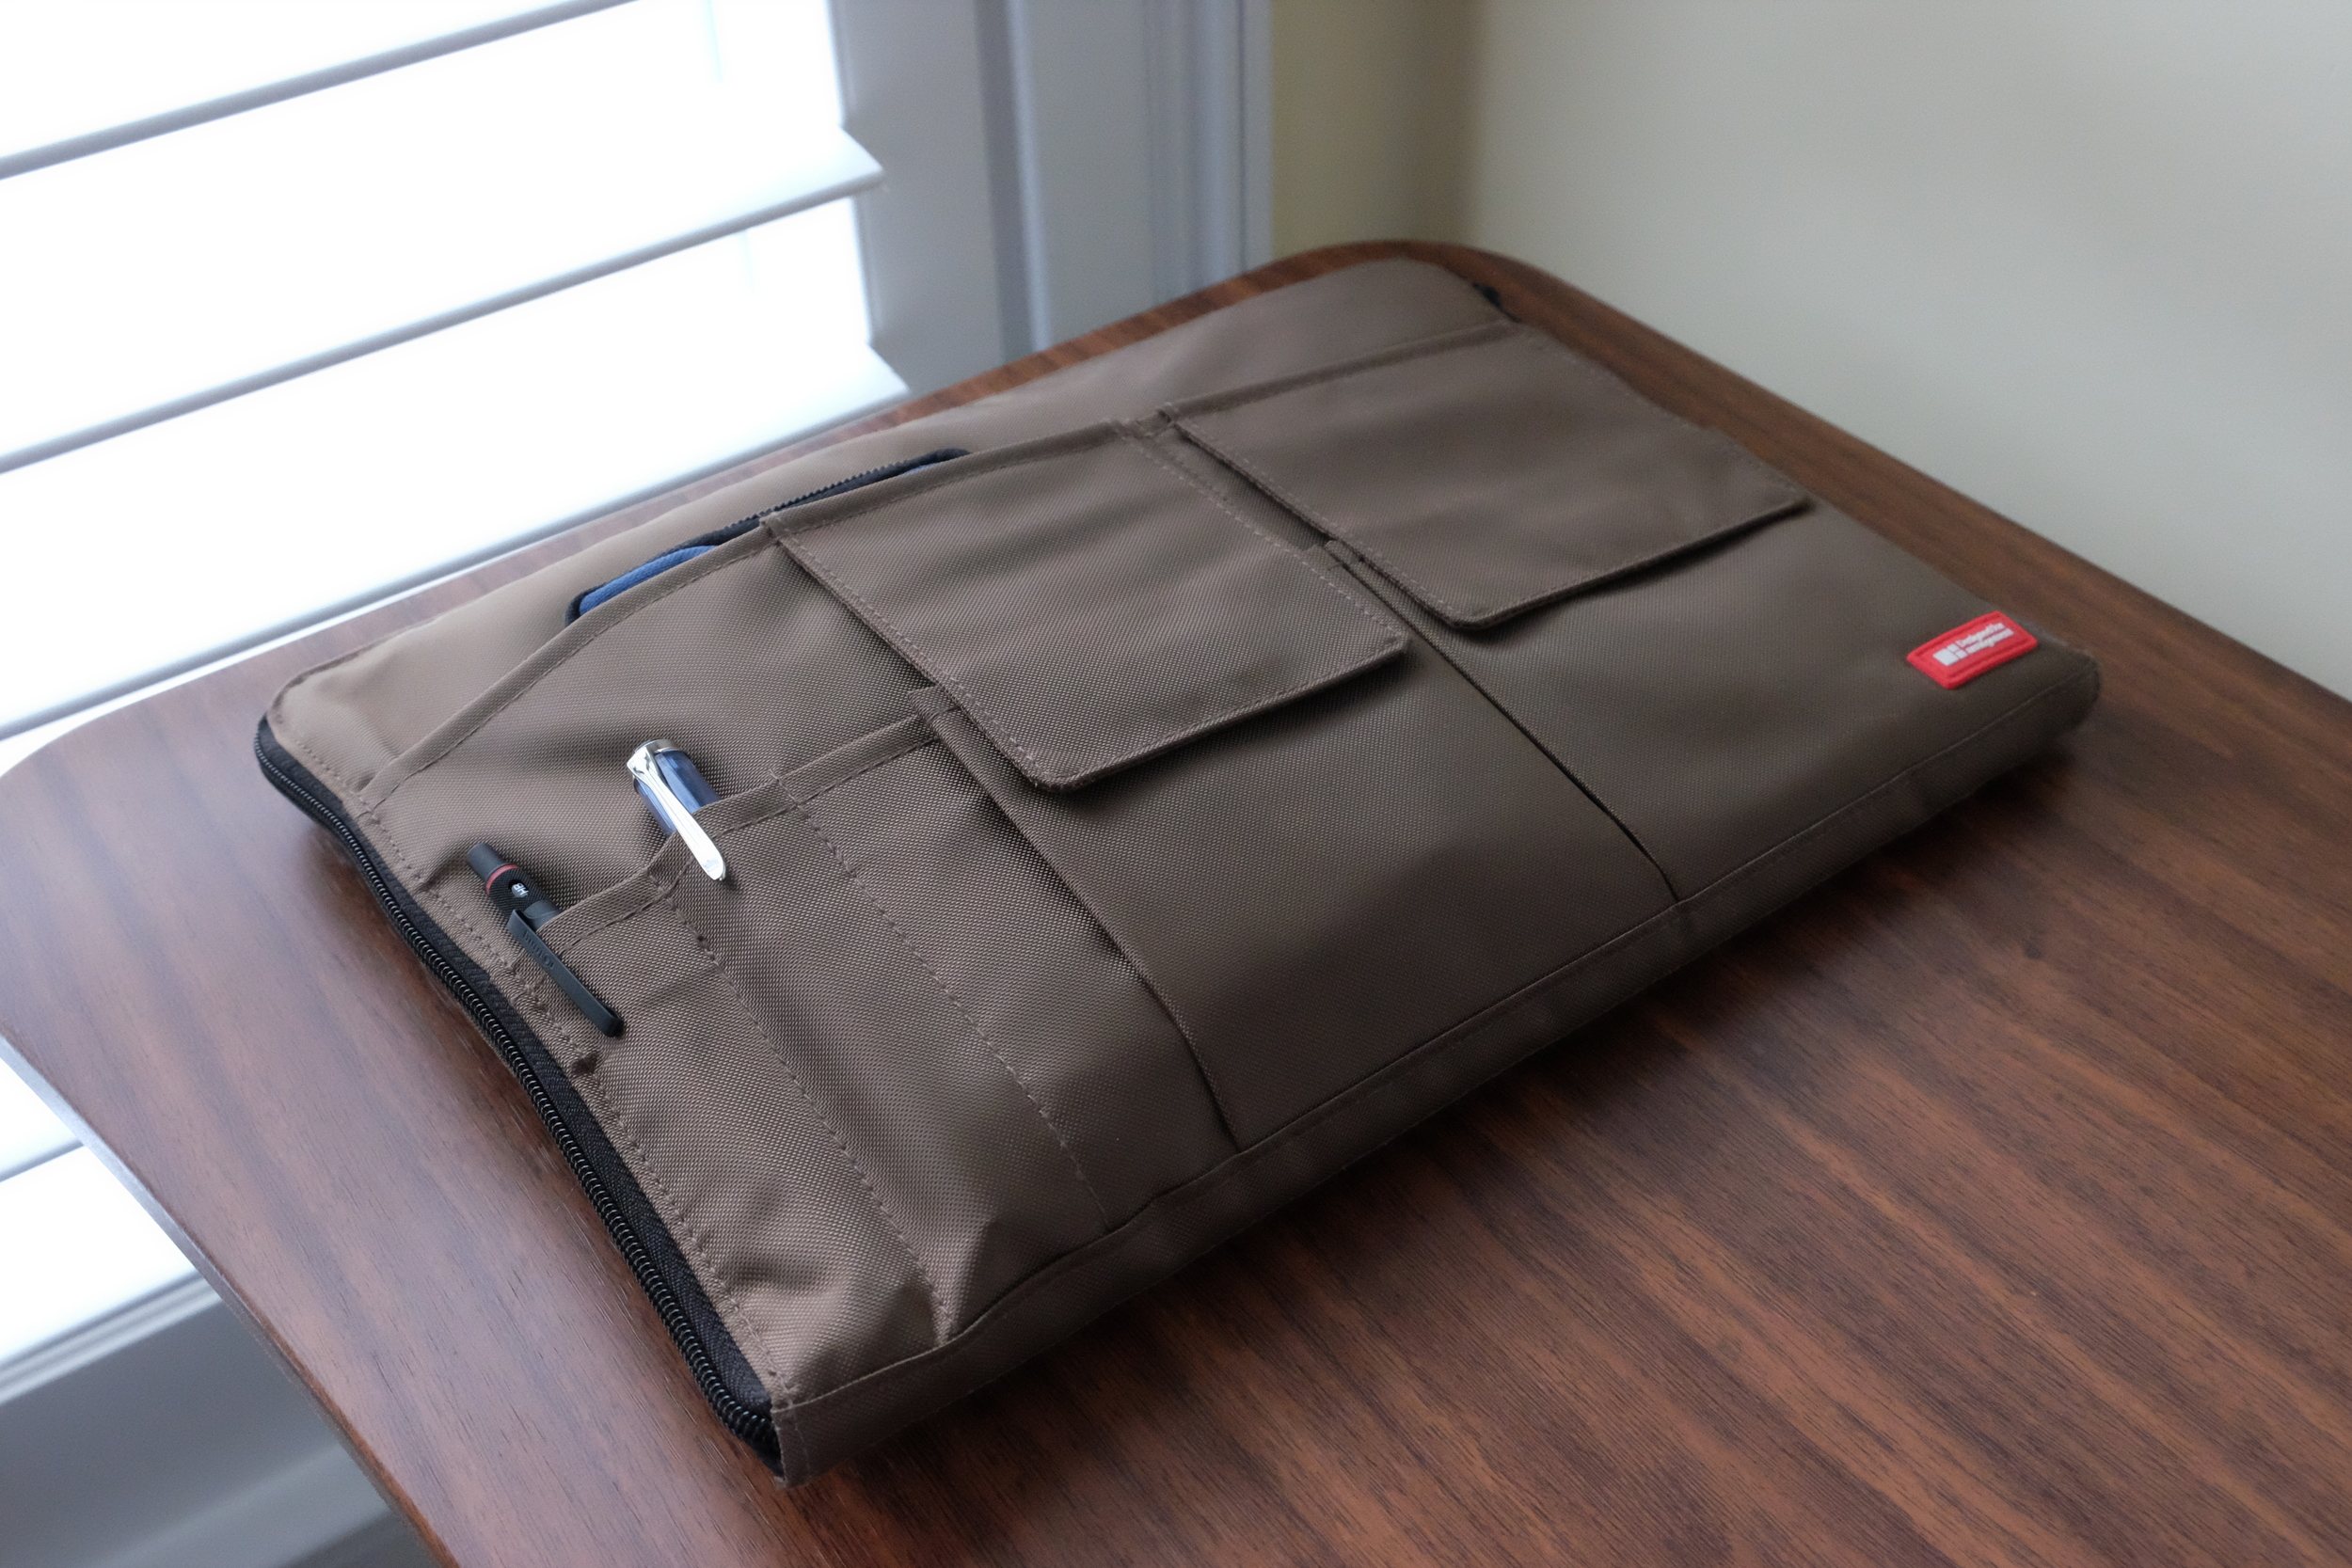 The Lihit Lab Bag-in-Bag portfolio/organizer has quickly made found its way into my daily work carry, and sometimes even on the weekend.